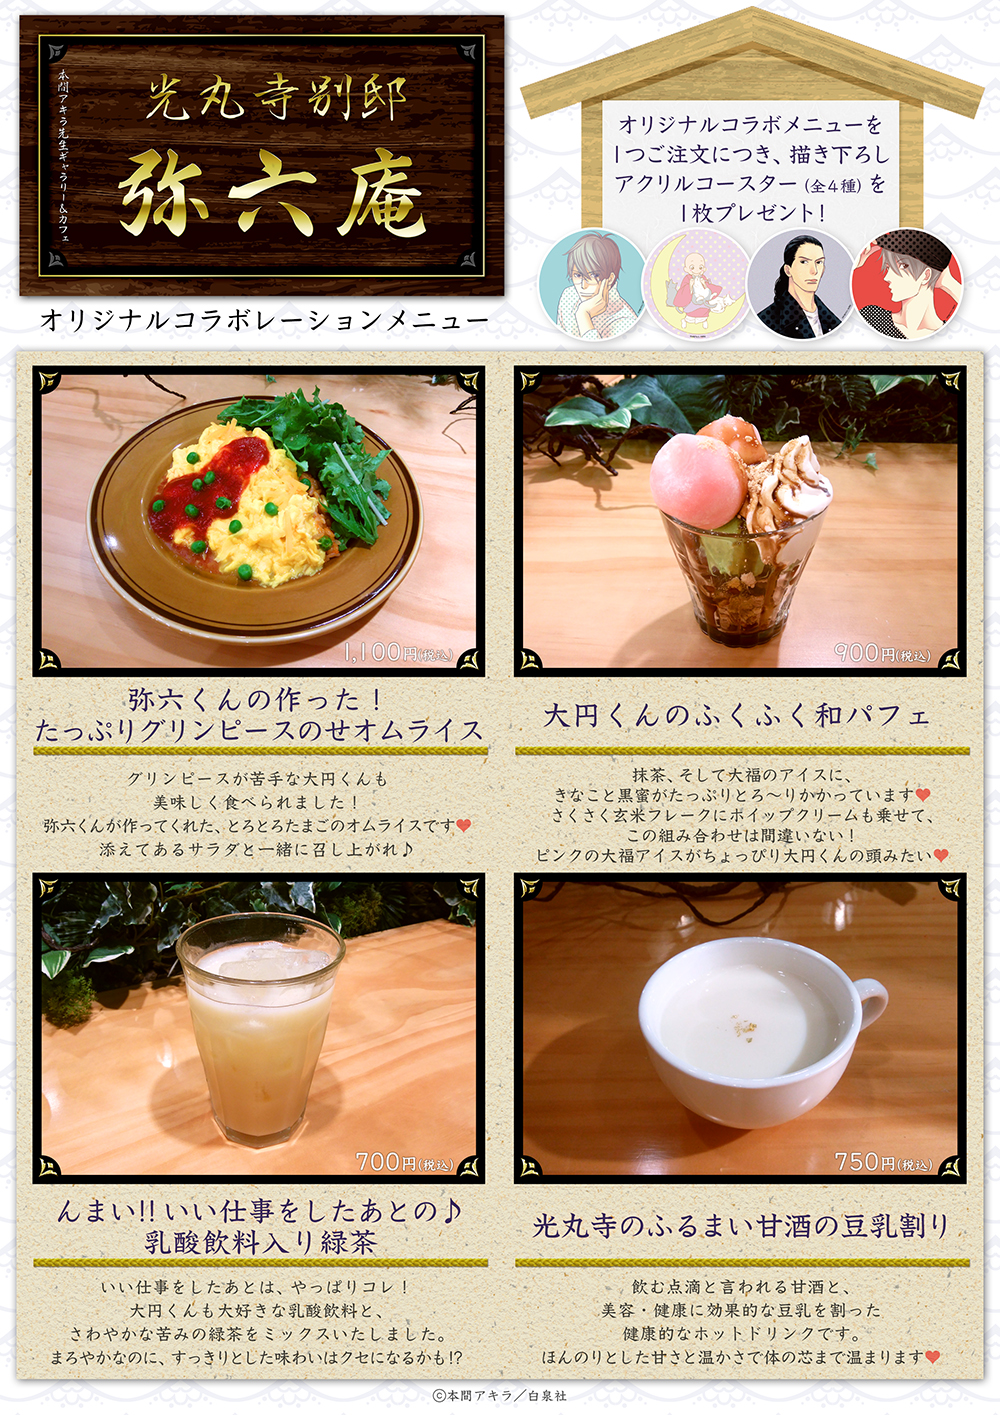 mirokuan_cafe_menu